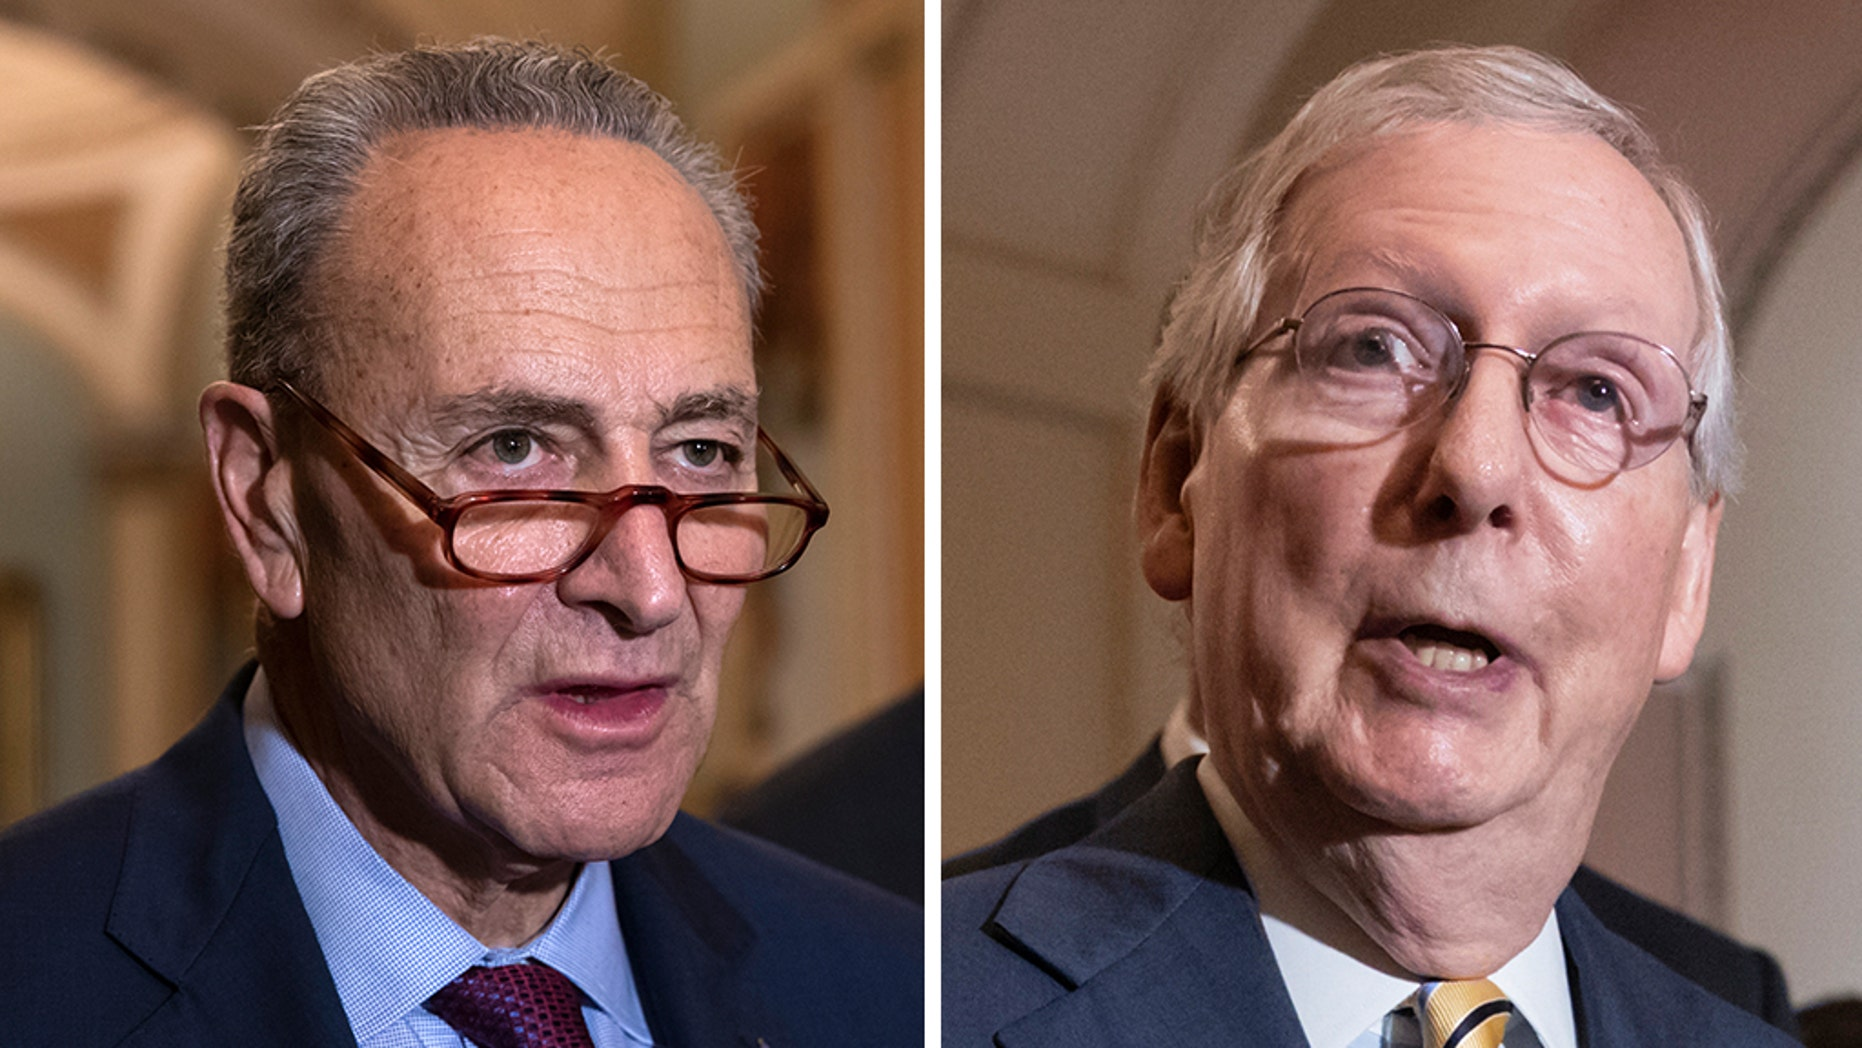 GOP Sen. Mitch McConnell on Wednesday denied a request made by Democratic Sen. Chuck Schumer to approve a briefing by FBI agents regarding the bureau's background investigation (BI) into Supreme Court nominee Brett Kavanaugh.